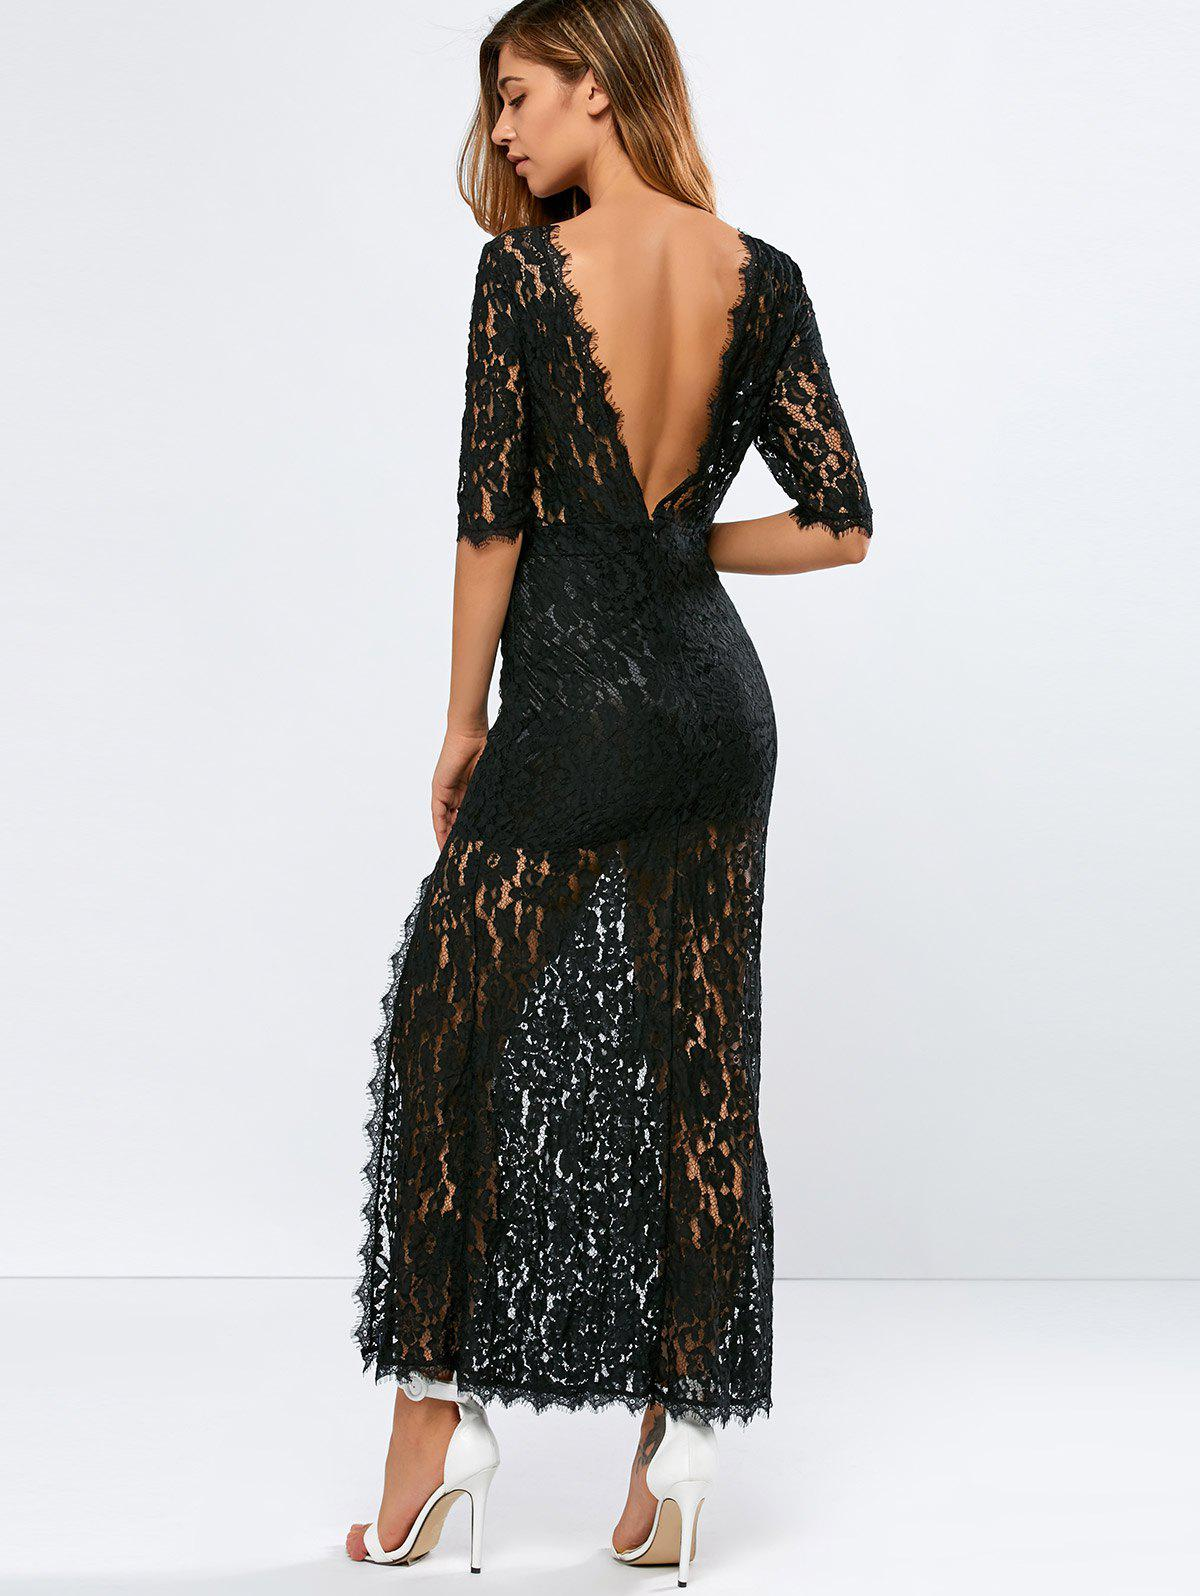 Lace Backless Slit Maxi See Through Evening Dress, Black